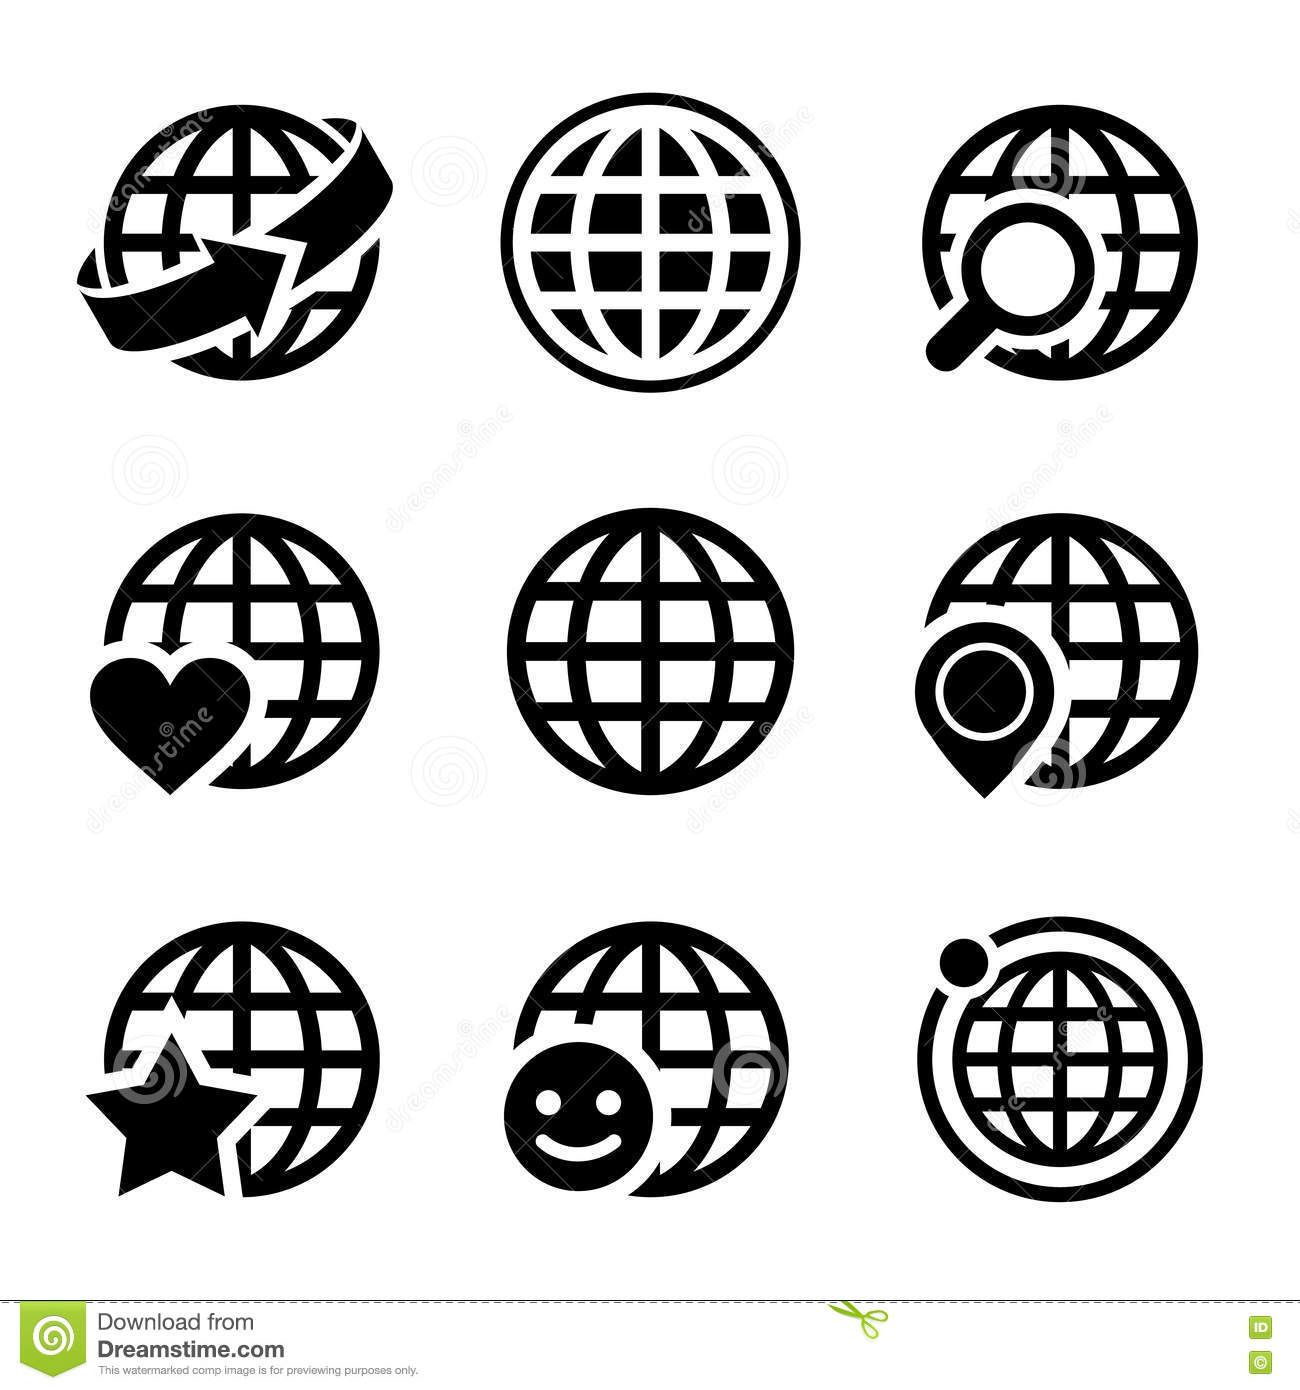 Pin by cyberbrander on 2017 cb biz tools pinterest globe earth vector icons set globe earth vector icons set on white created 4 december 13 graphics files included jpg image eps illustrator high publicscrutiny Choice Image